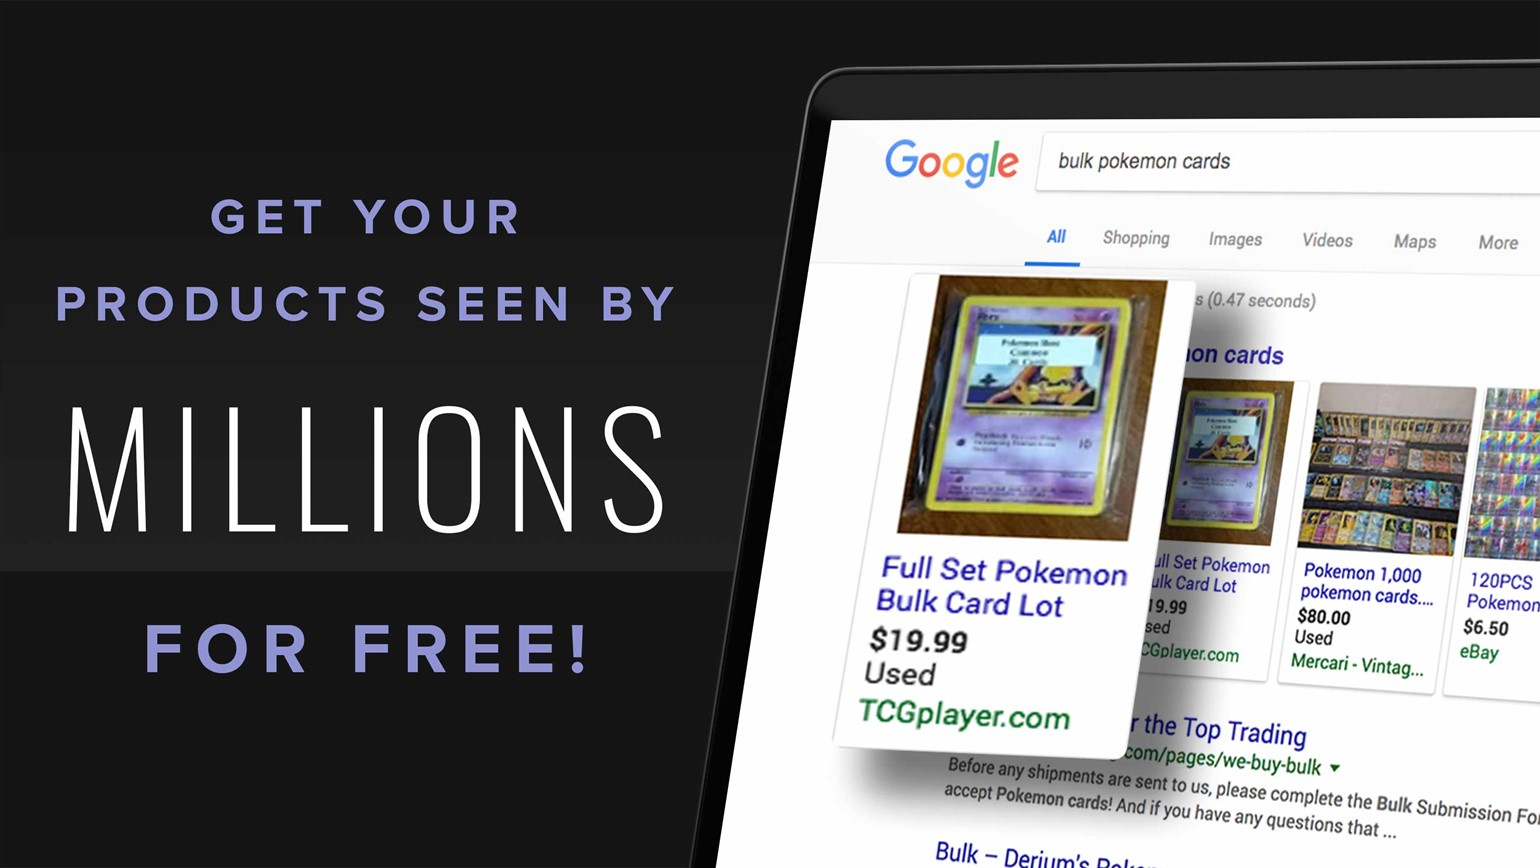 Get Your Products Seen by Millions (for Free!)